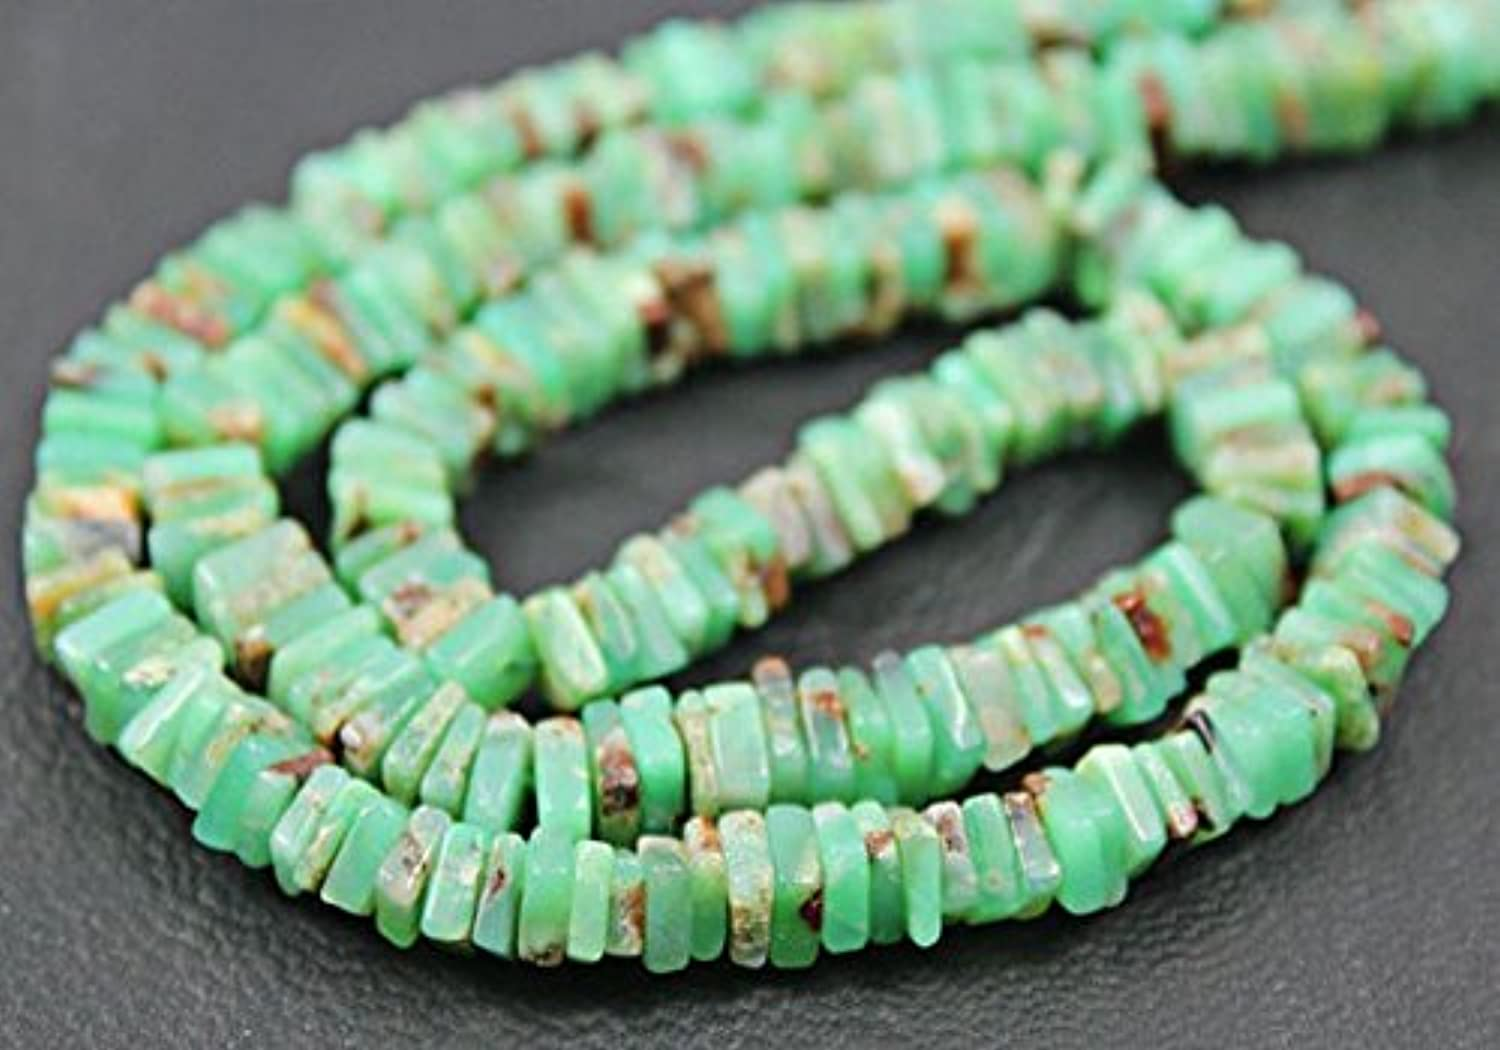 Natural verde Chrysoprase Smooth Heishi Cube Gemstone Loose Craft Beads Stre 8  9.5mm 6mm